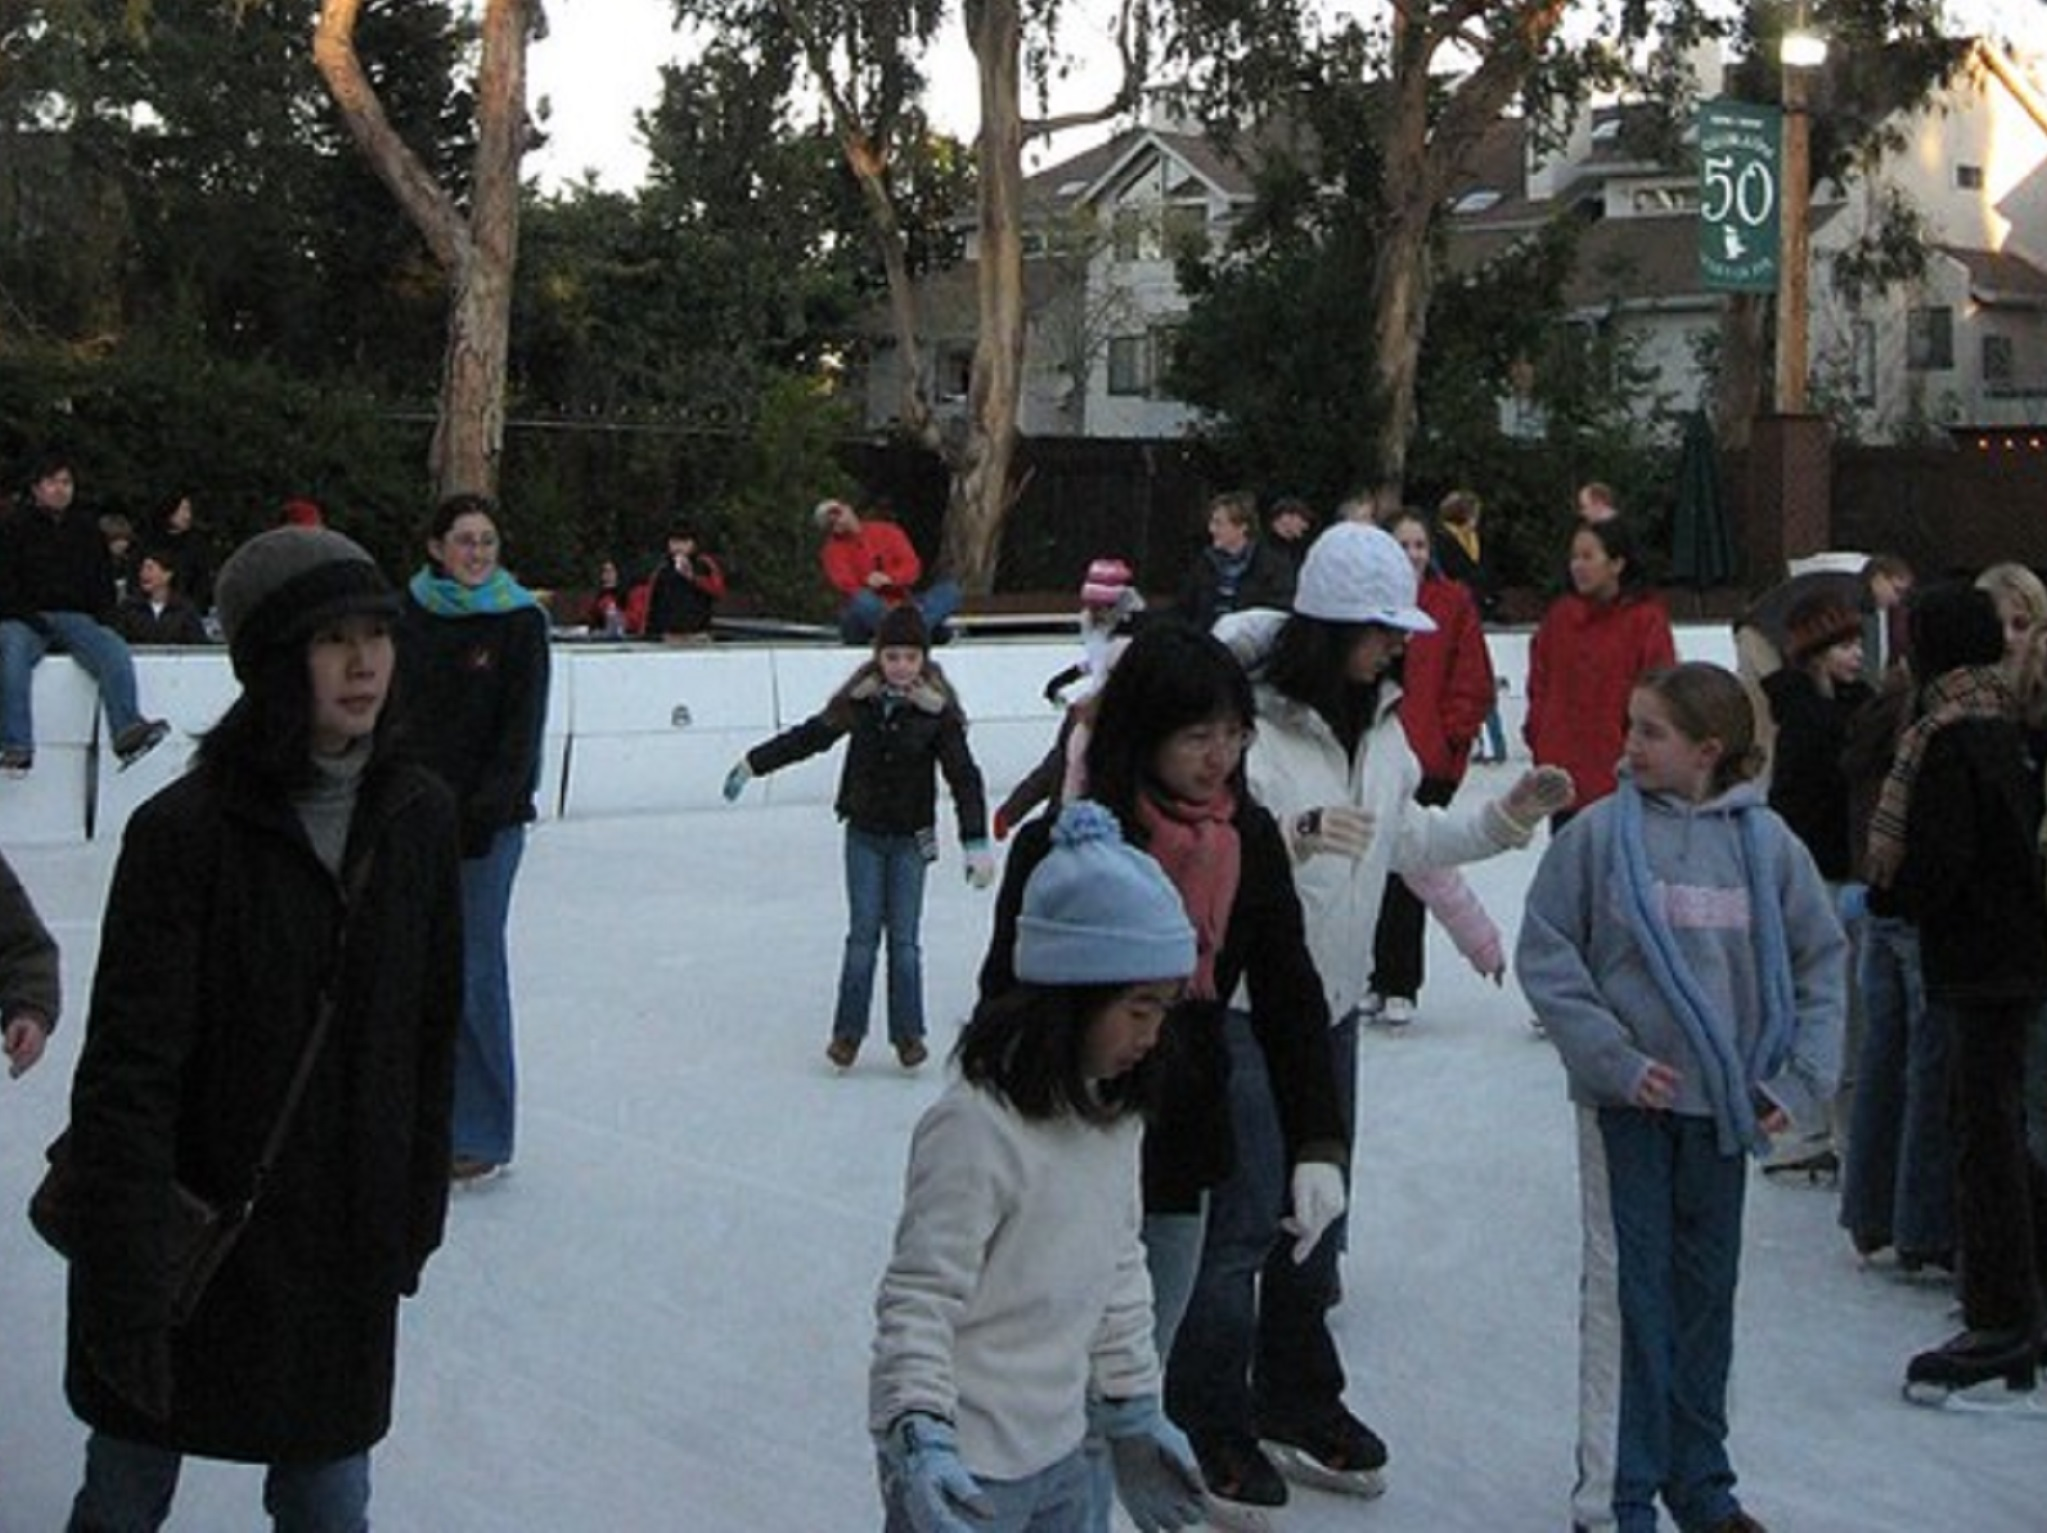 People skating on an ice rink